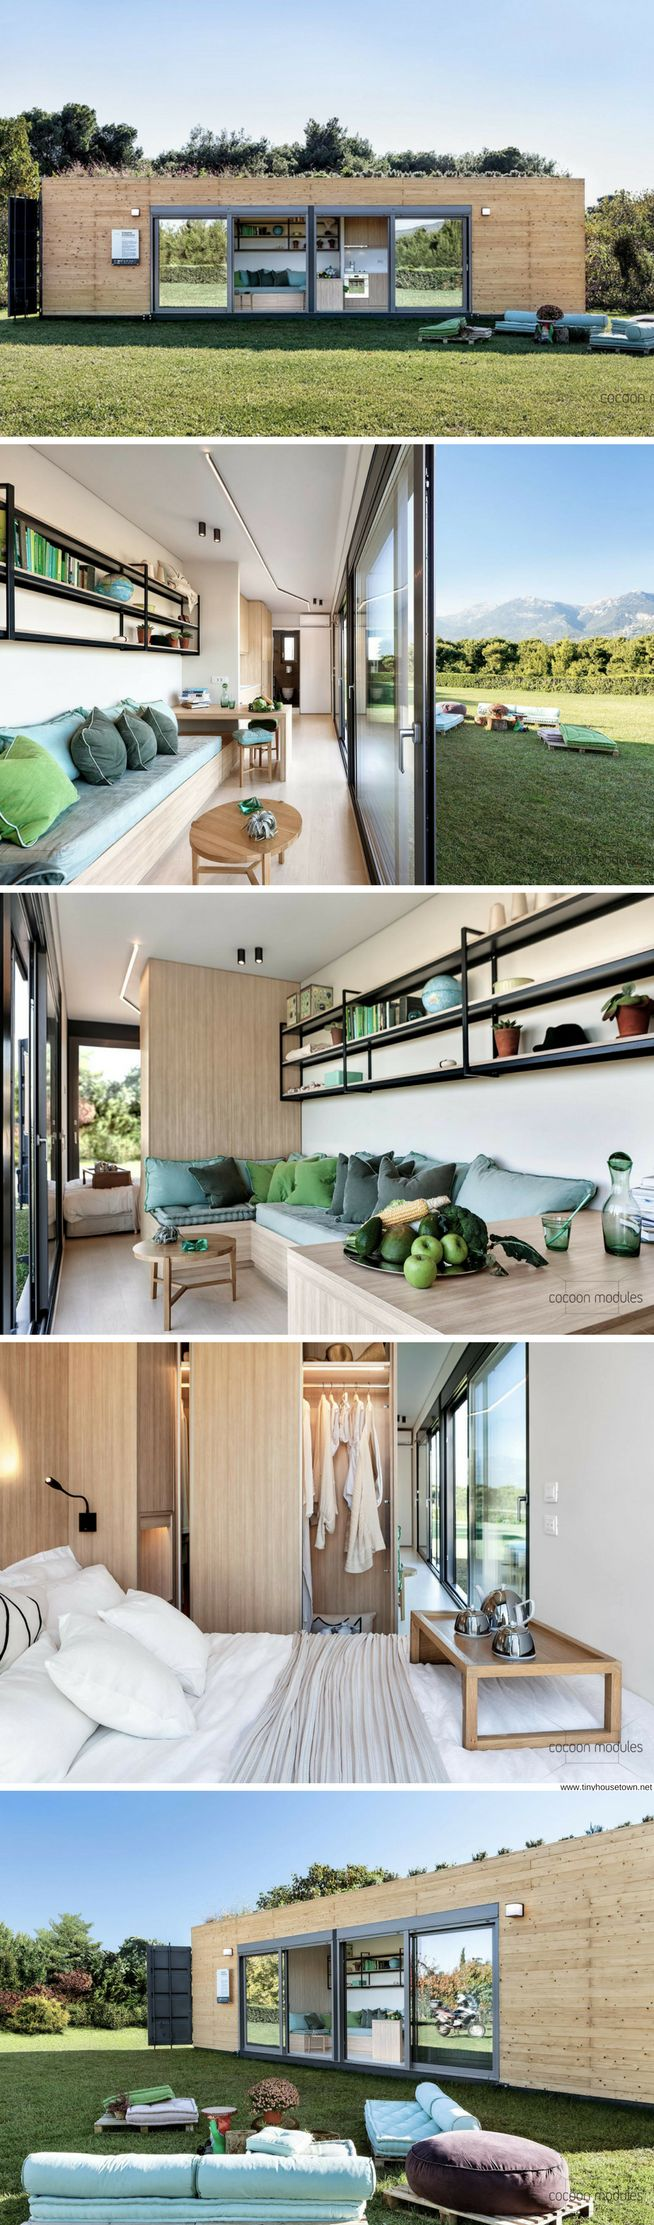 An eco-frindly shipping container home from Greece